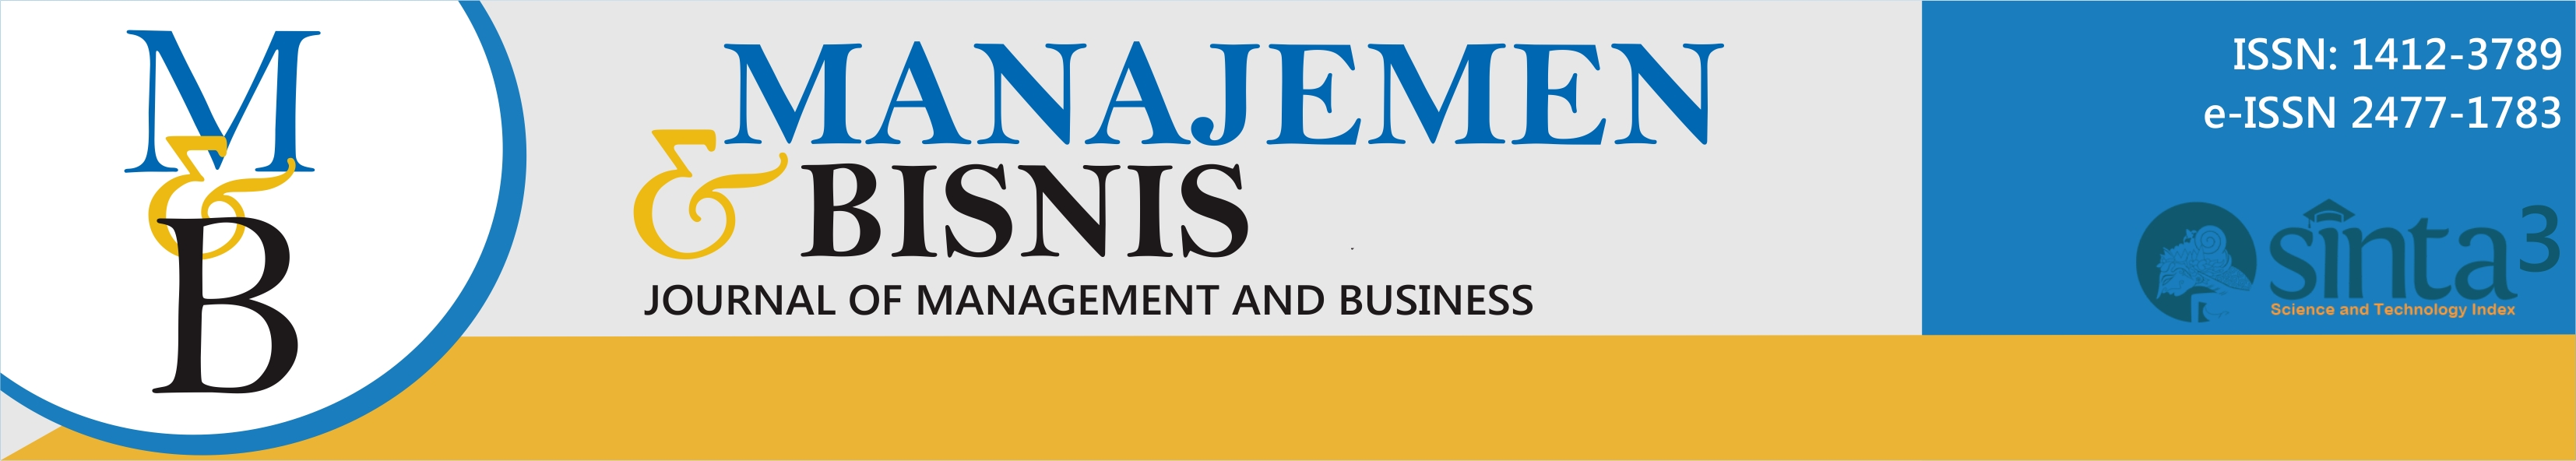 Journal of Management and Business (MABIS)